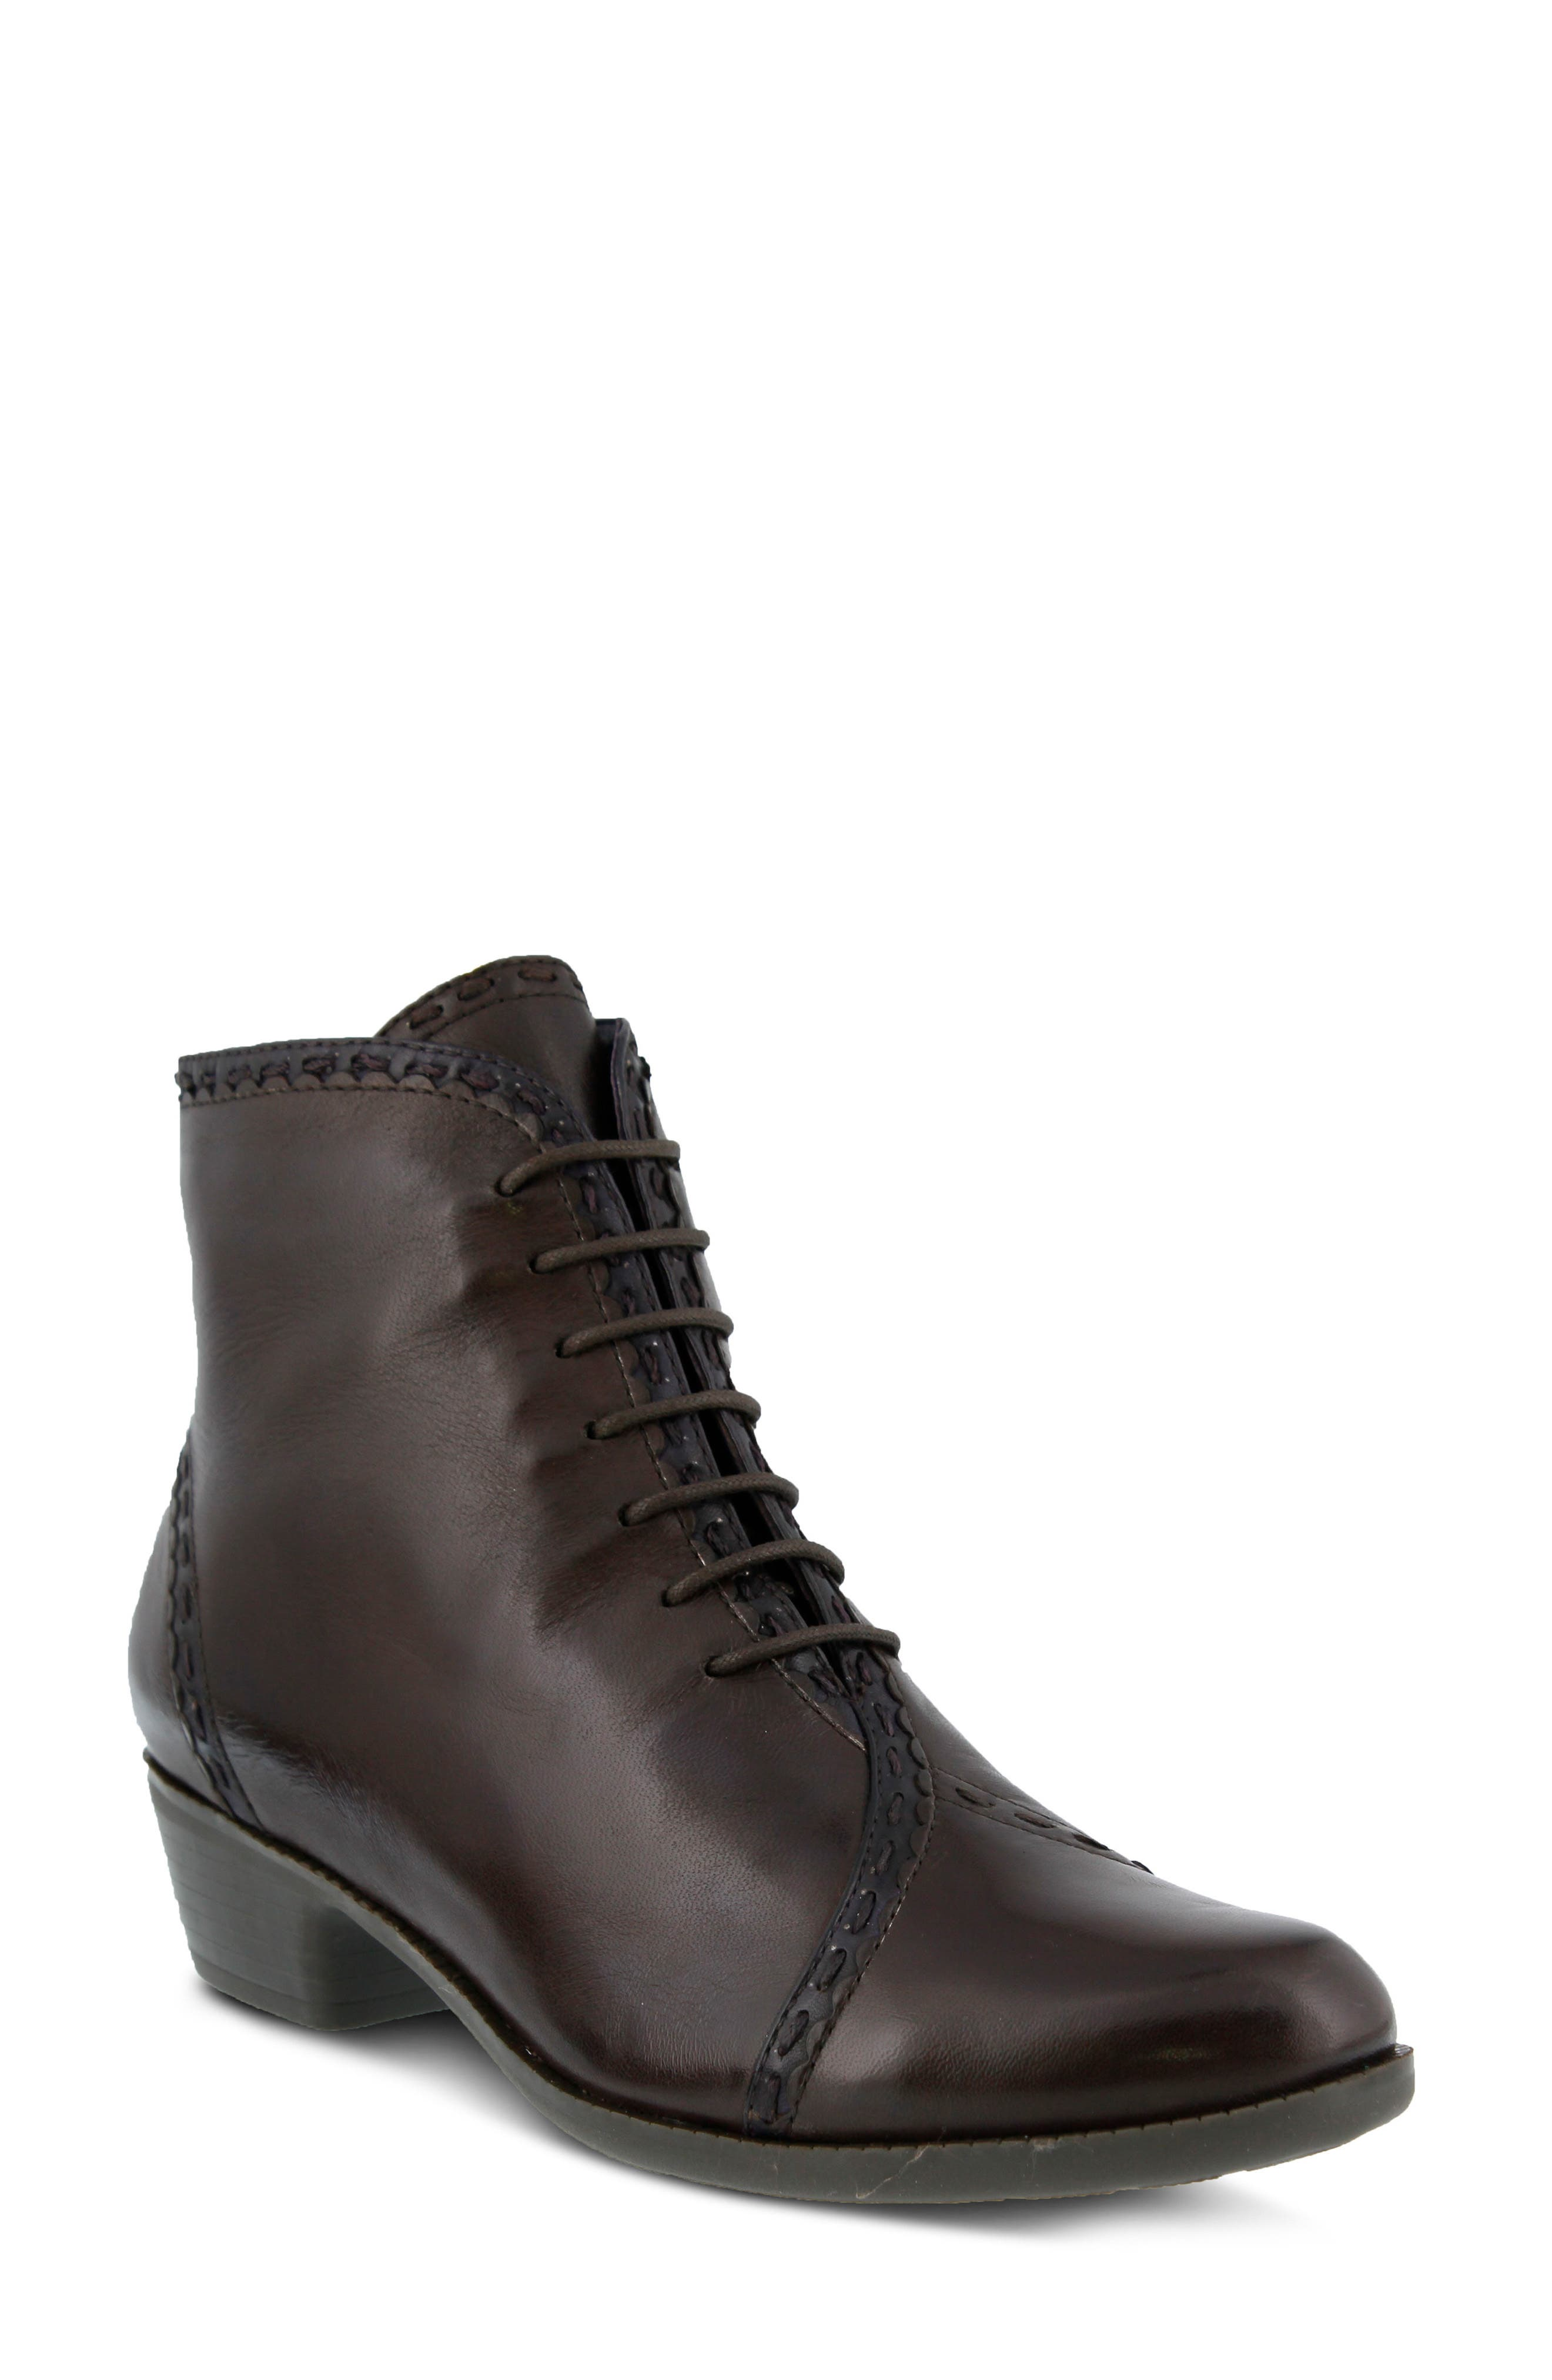 Jaru Lace-Up Bootie,                         Main,                         color, Dark Brown Leather